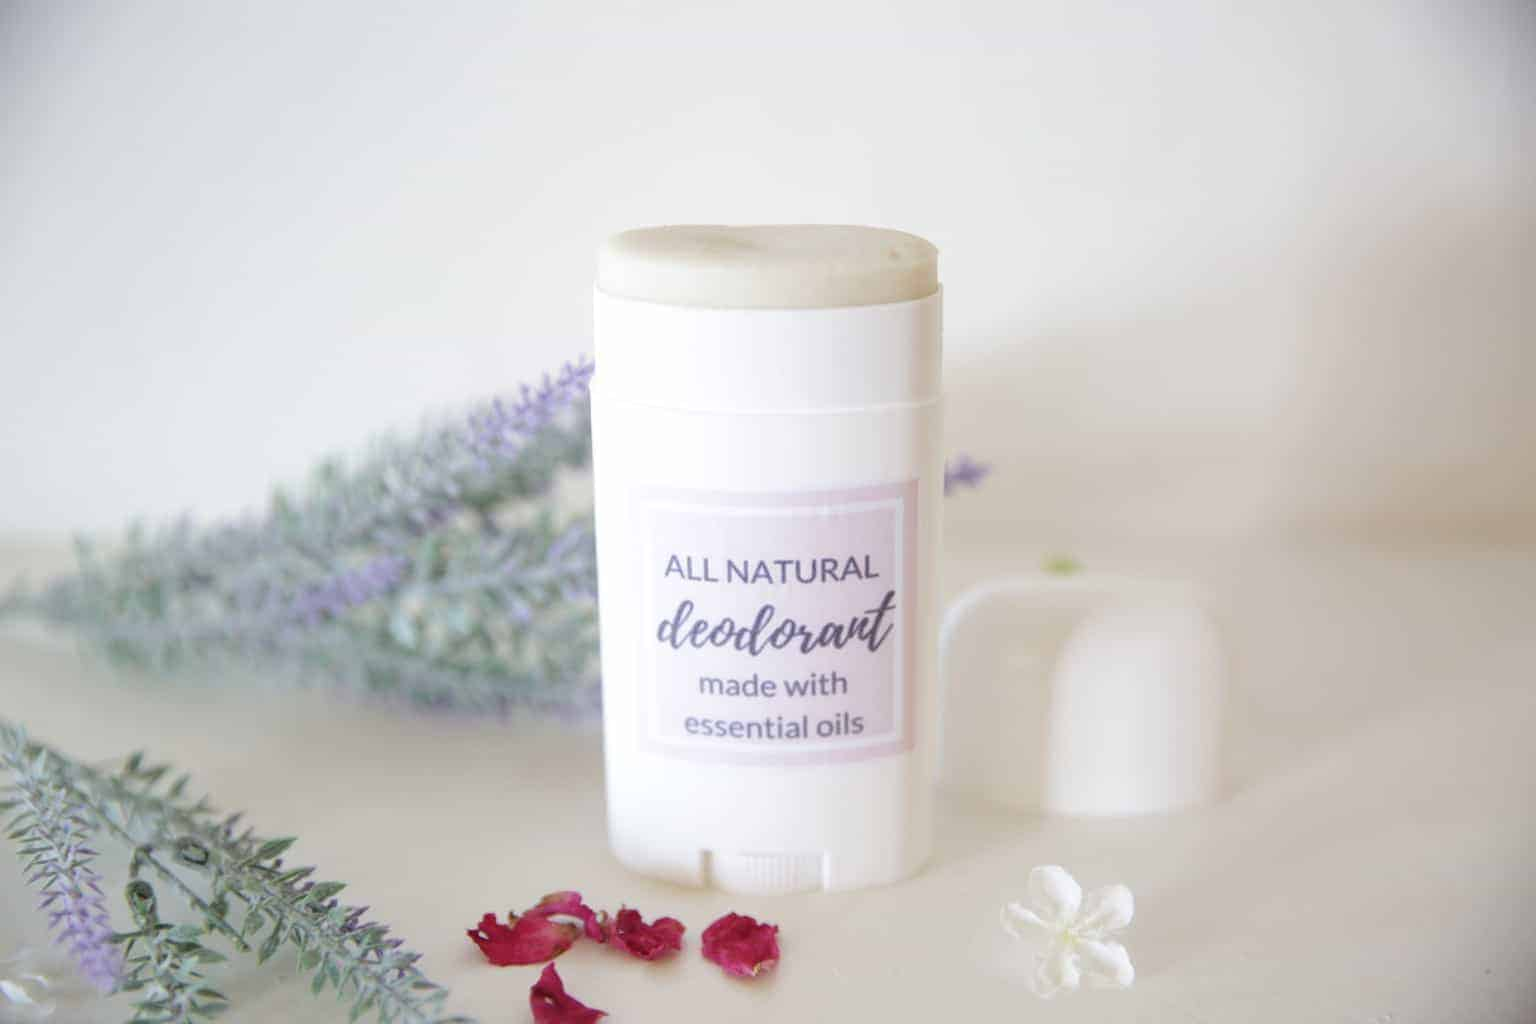 All natural deodorant with essential oils surrounded by lavender sprigs and rose petals